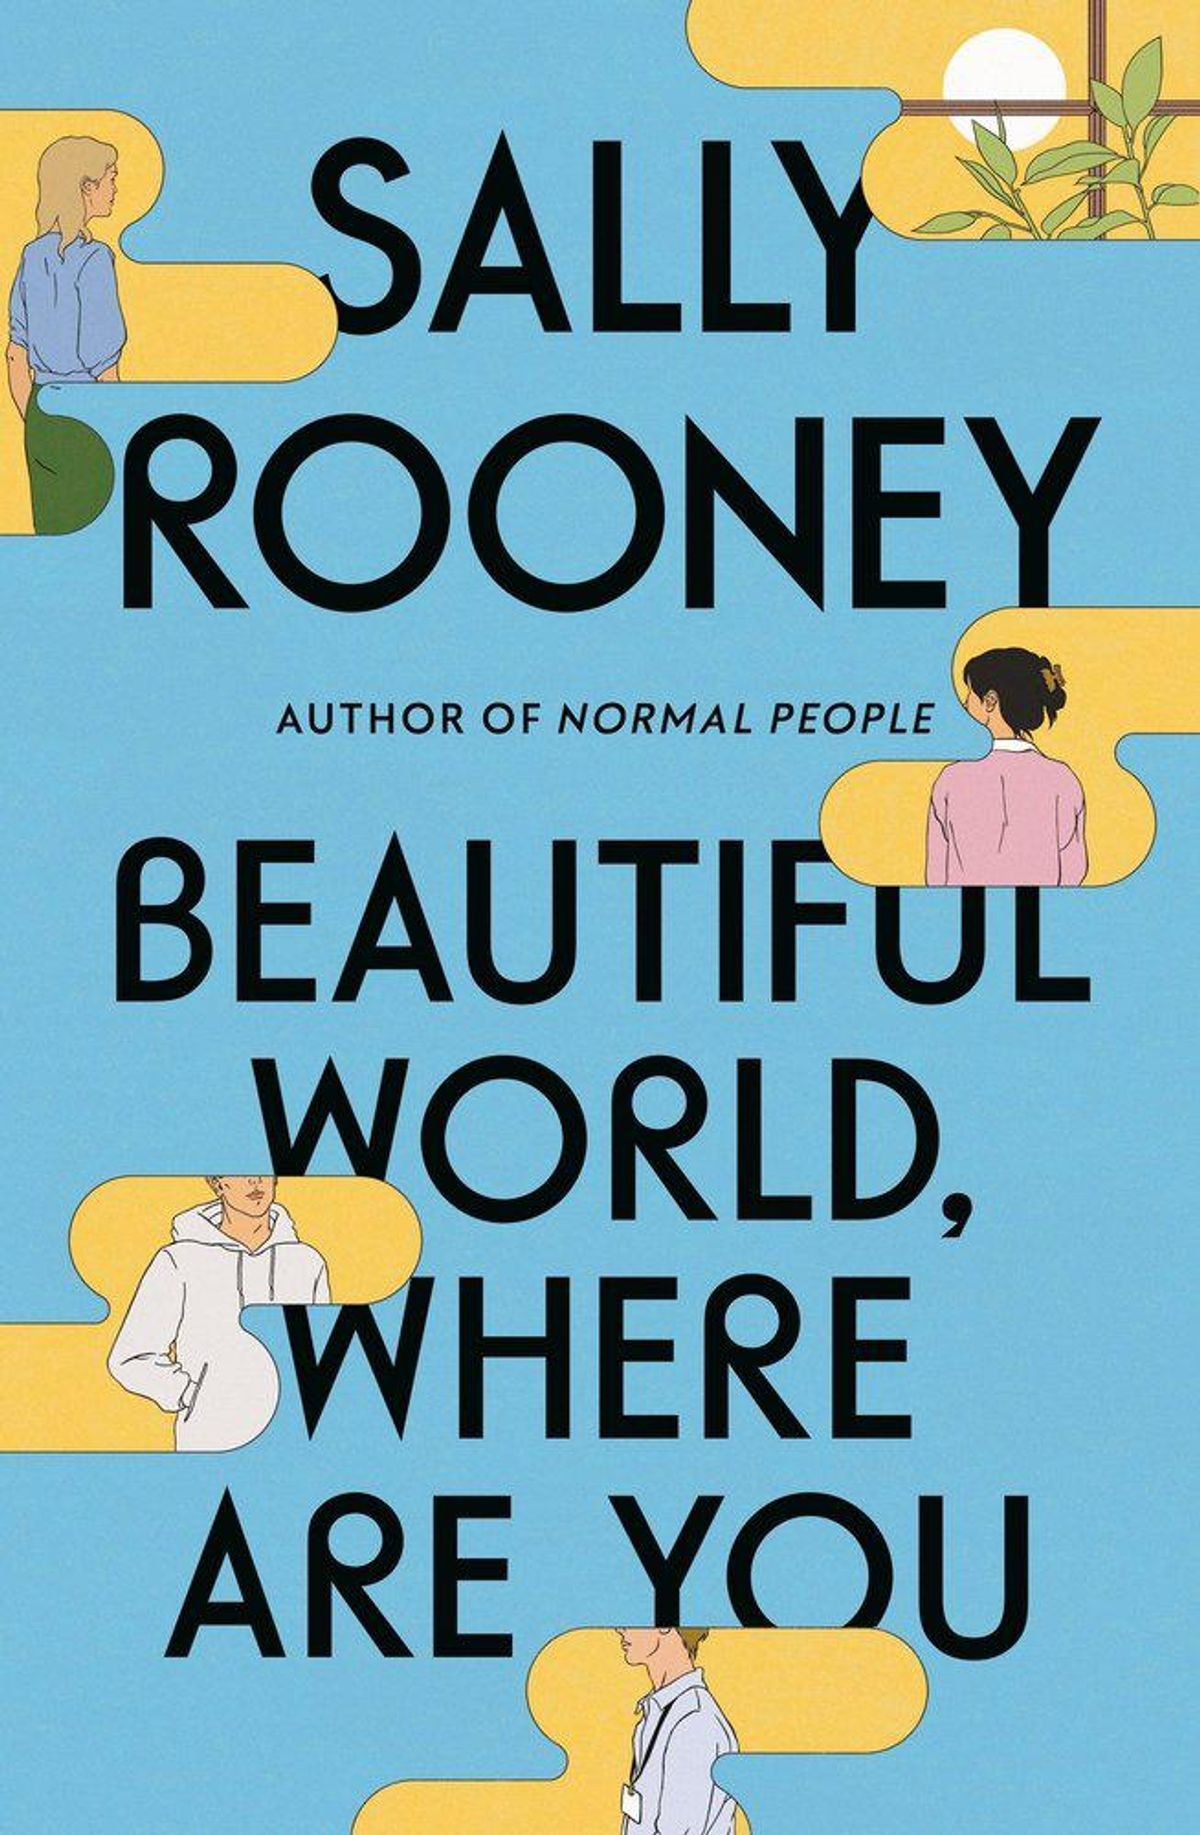 sally rooney beautiful world where are you